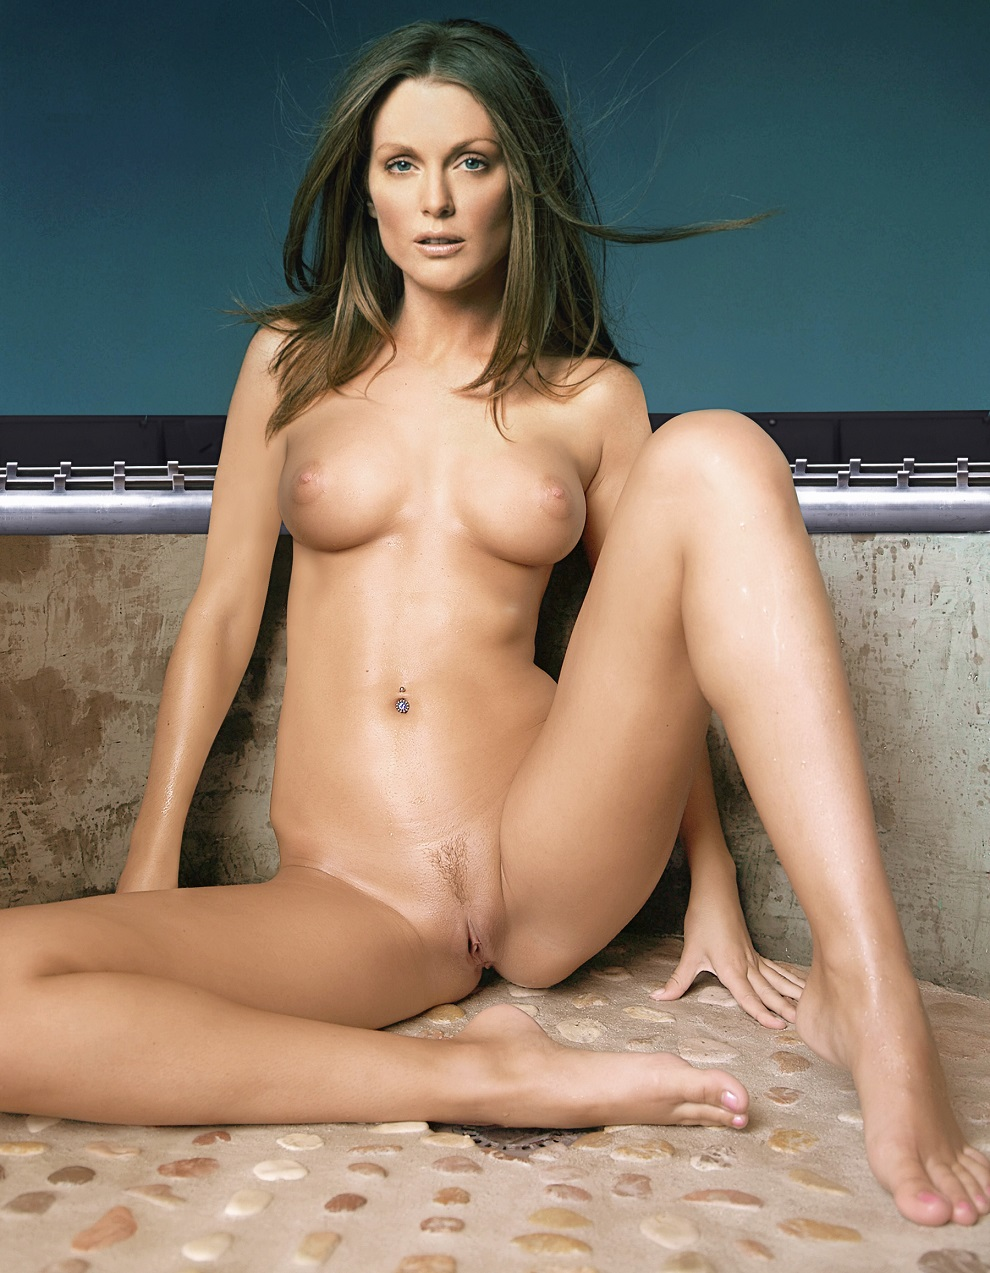 Hot celebrity nude fakes